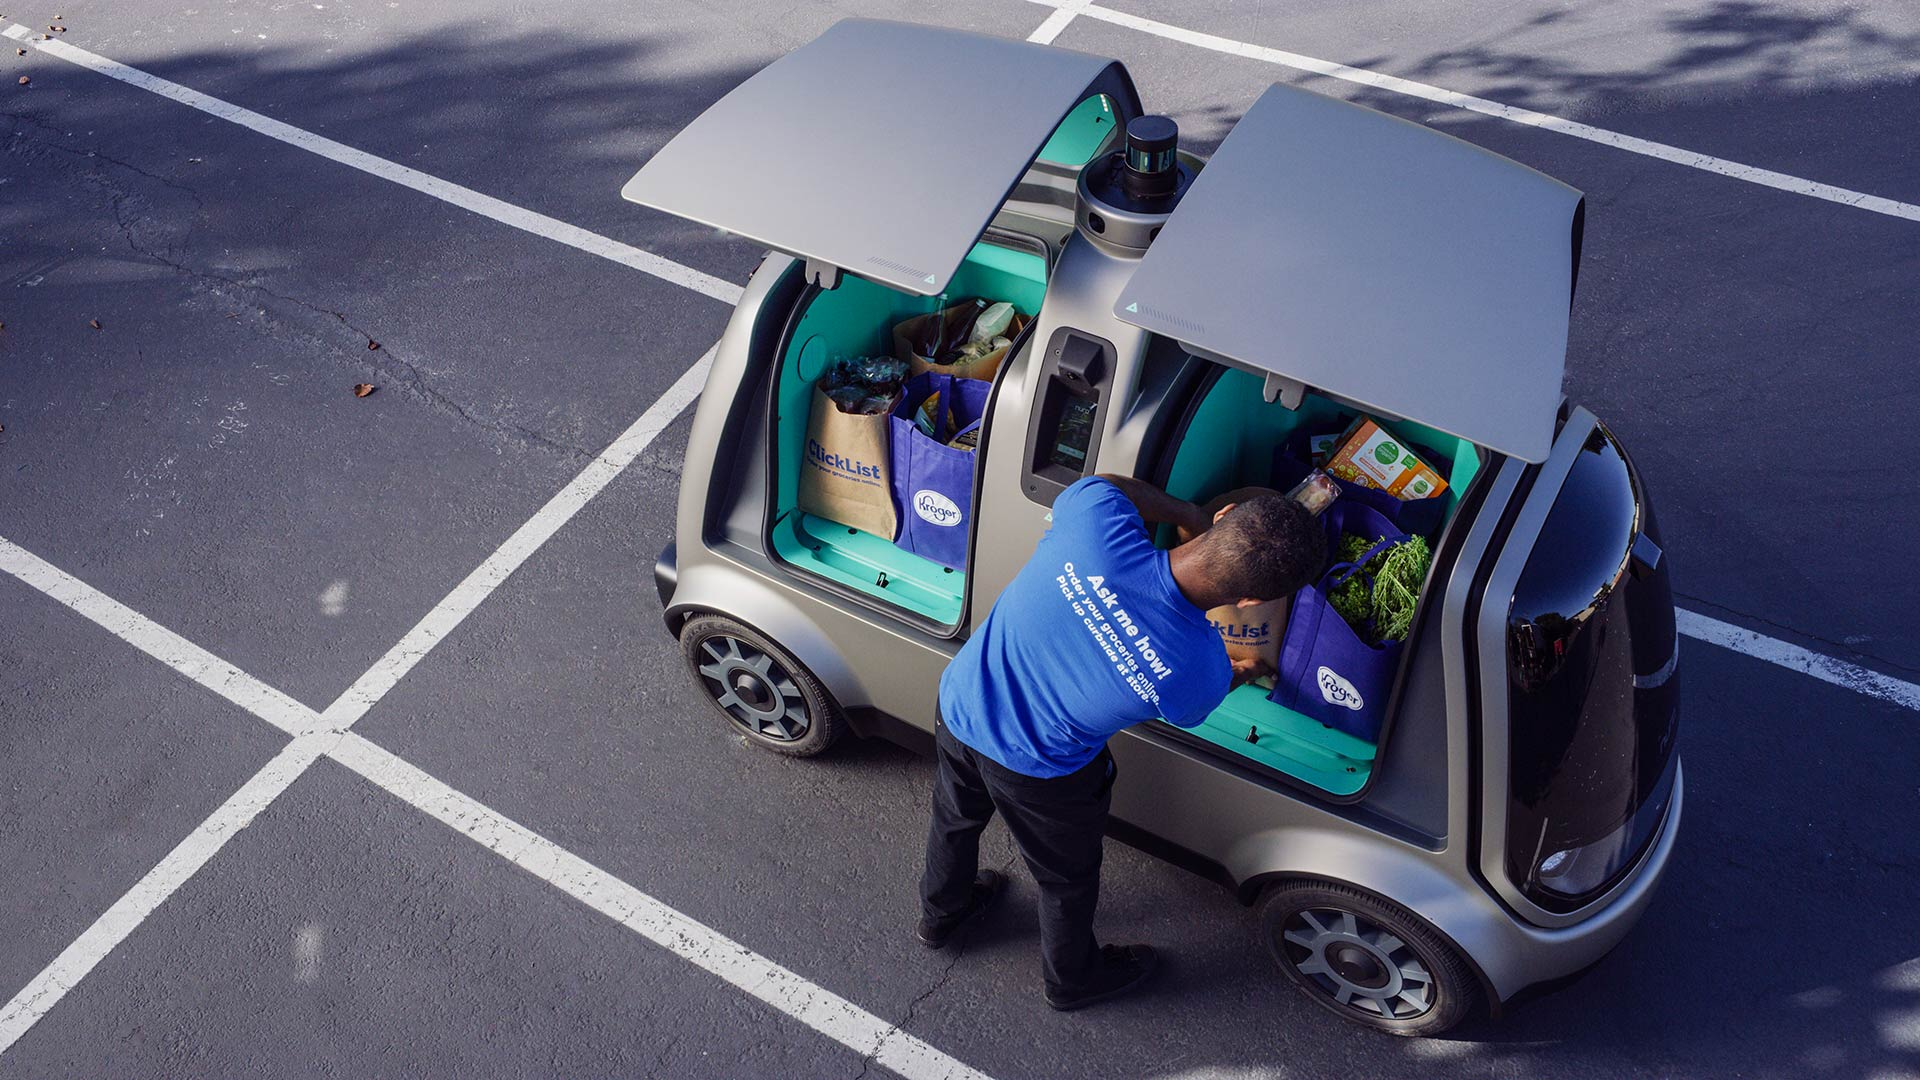 The Kroger Co. announced it would pilot a program using autonomous vehicles to deliver food in Scottsdale.